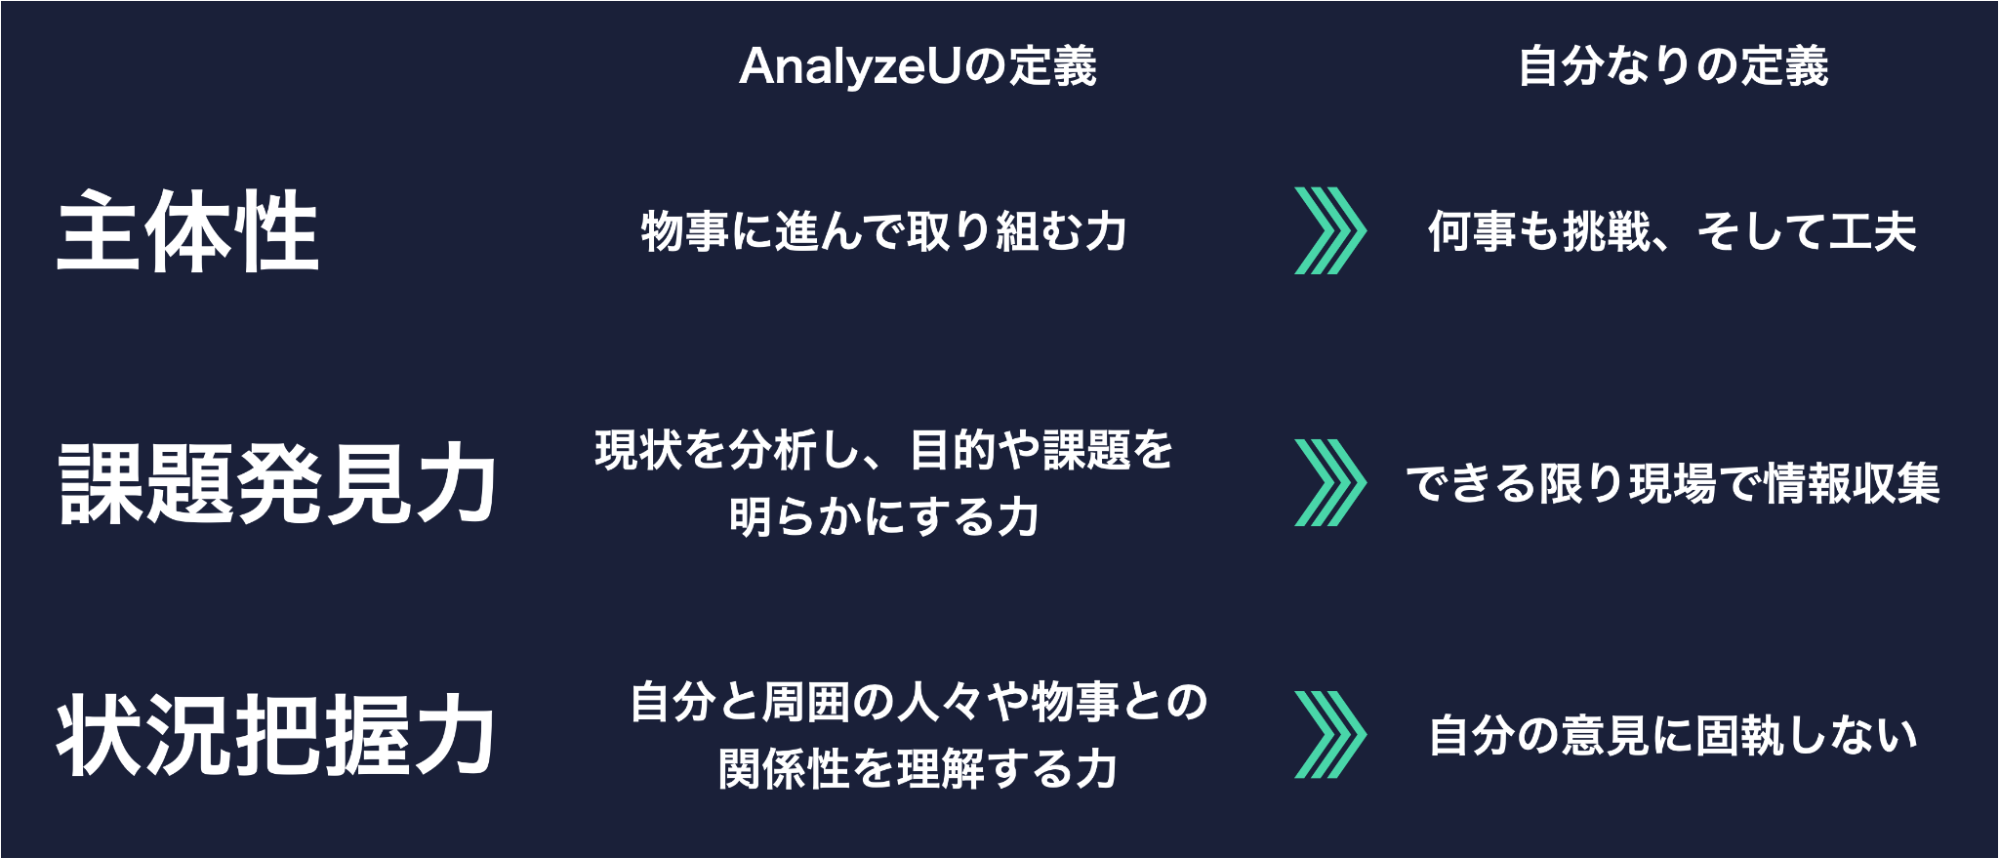 https://offerbox.jp/ofbstudent/wp/wp-content/uploads/2021/05/image1.png